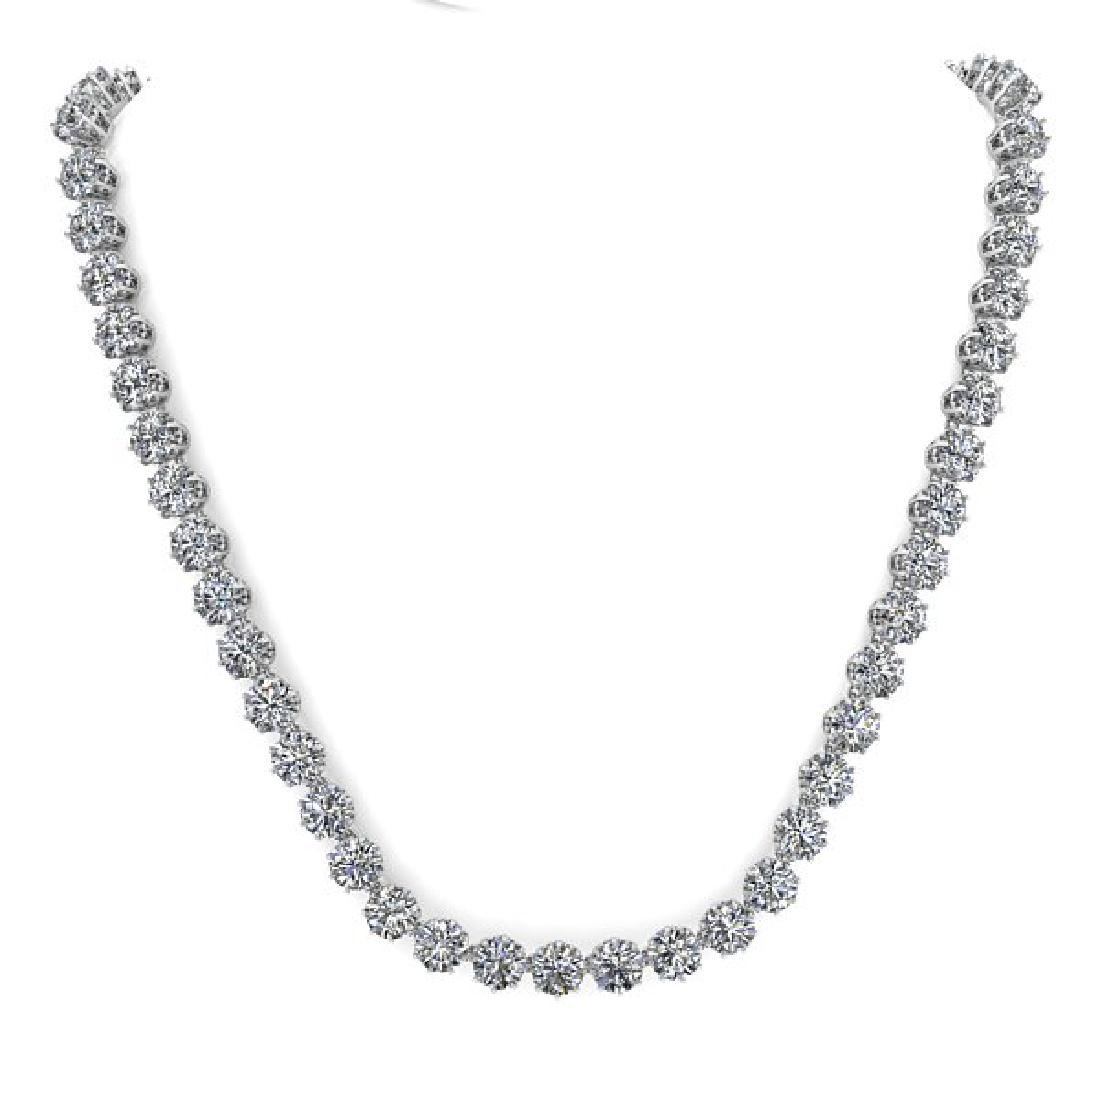 34 CTW SI Certified Diamond Necklace 18K White Gold - 3